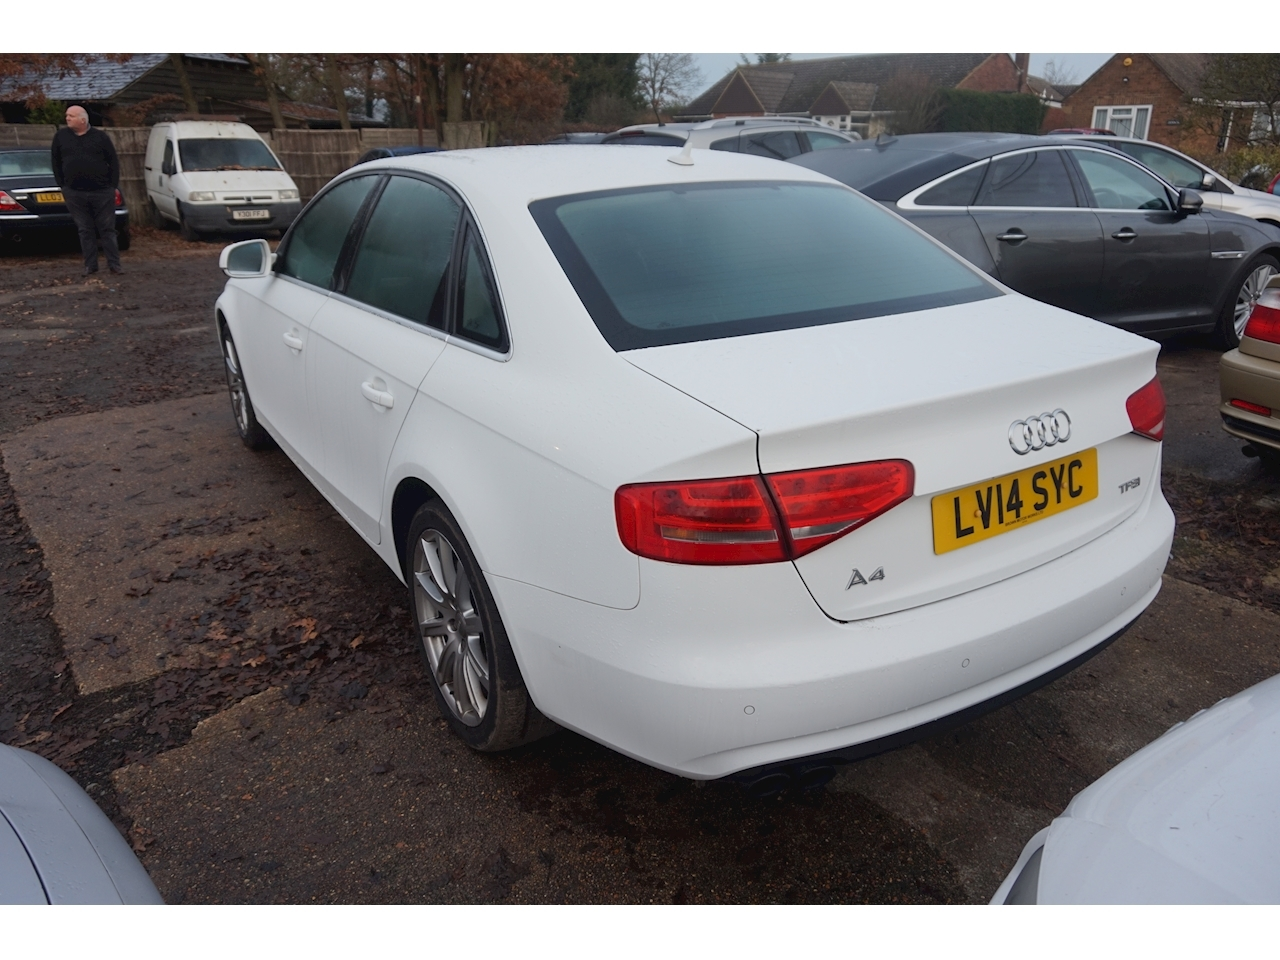 A4 Tfsi Se Technik Saloon 1.8 Manual Petrol